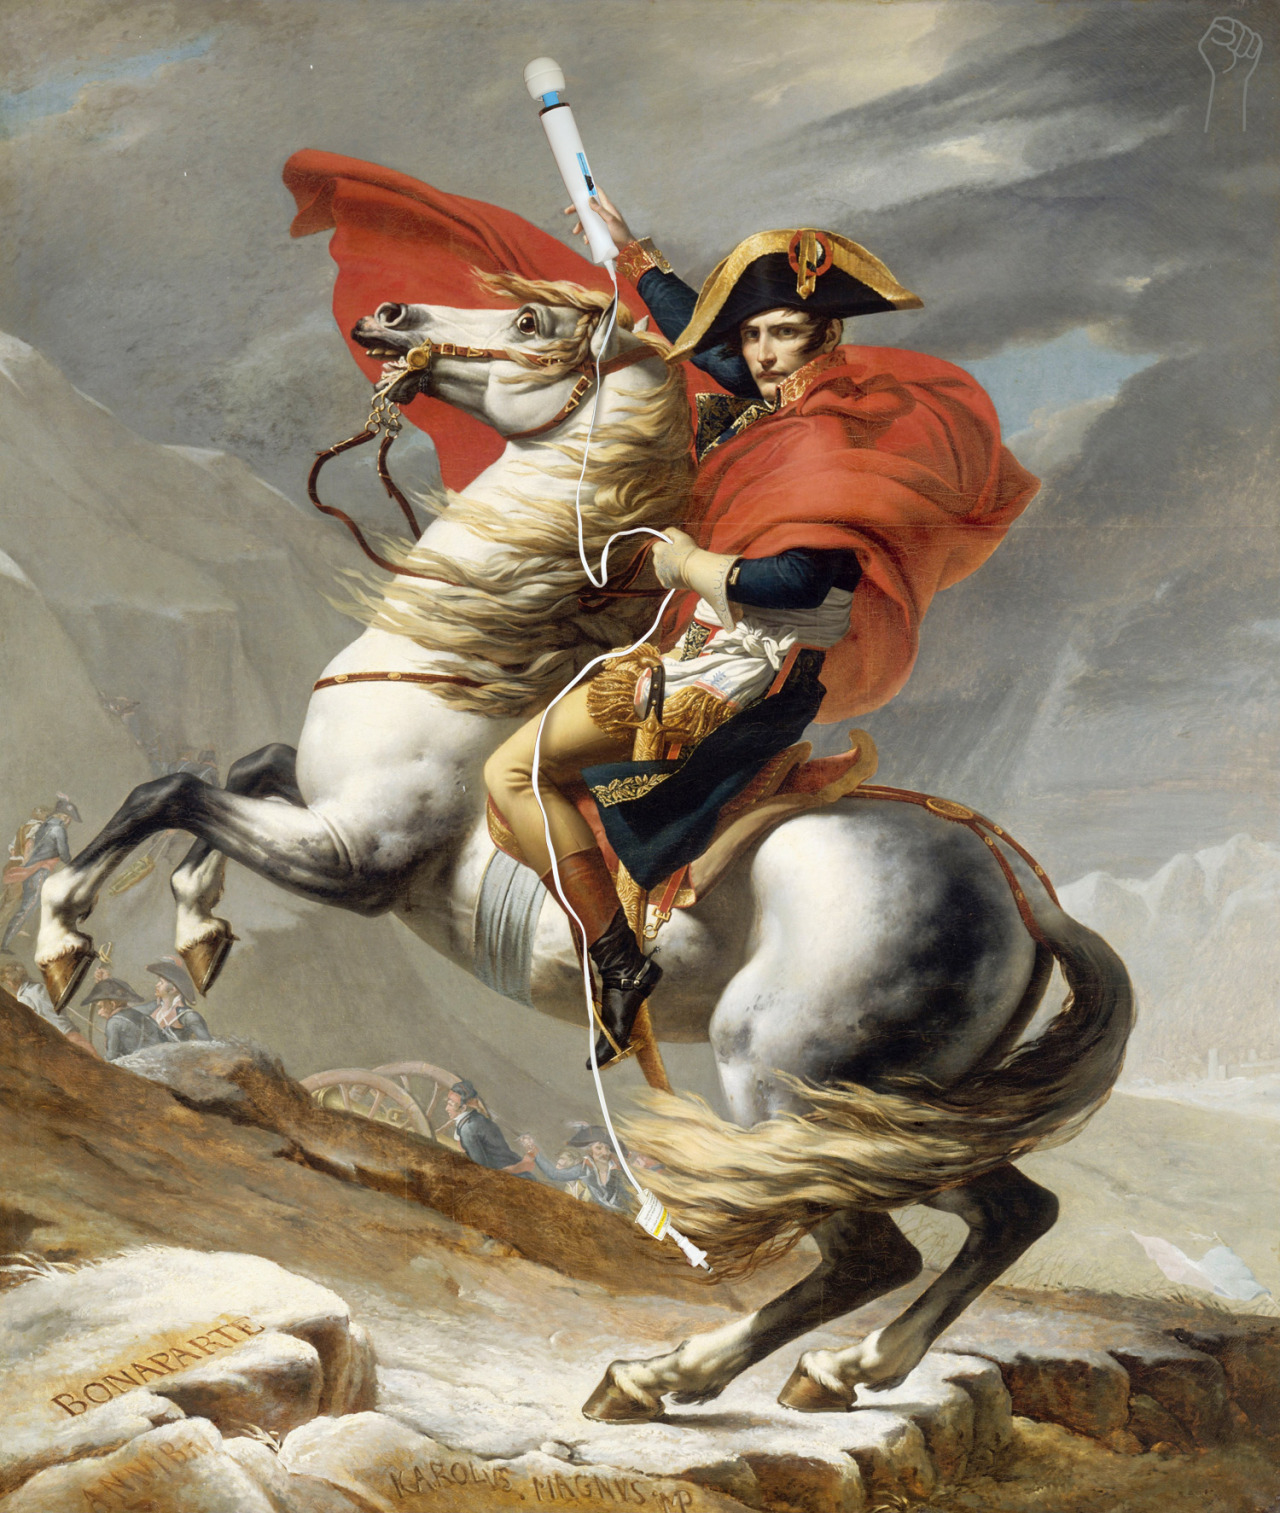 Napoleon Crossing the Alps with Magic Wand by Jacques-Louis David.